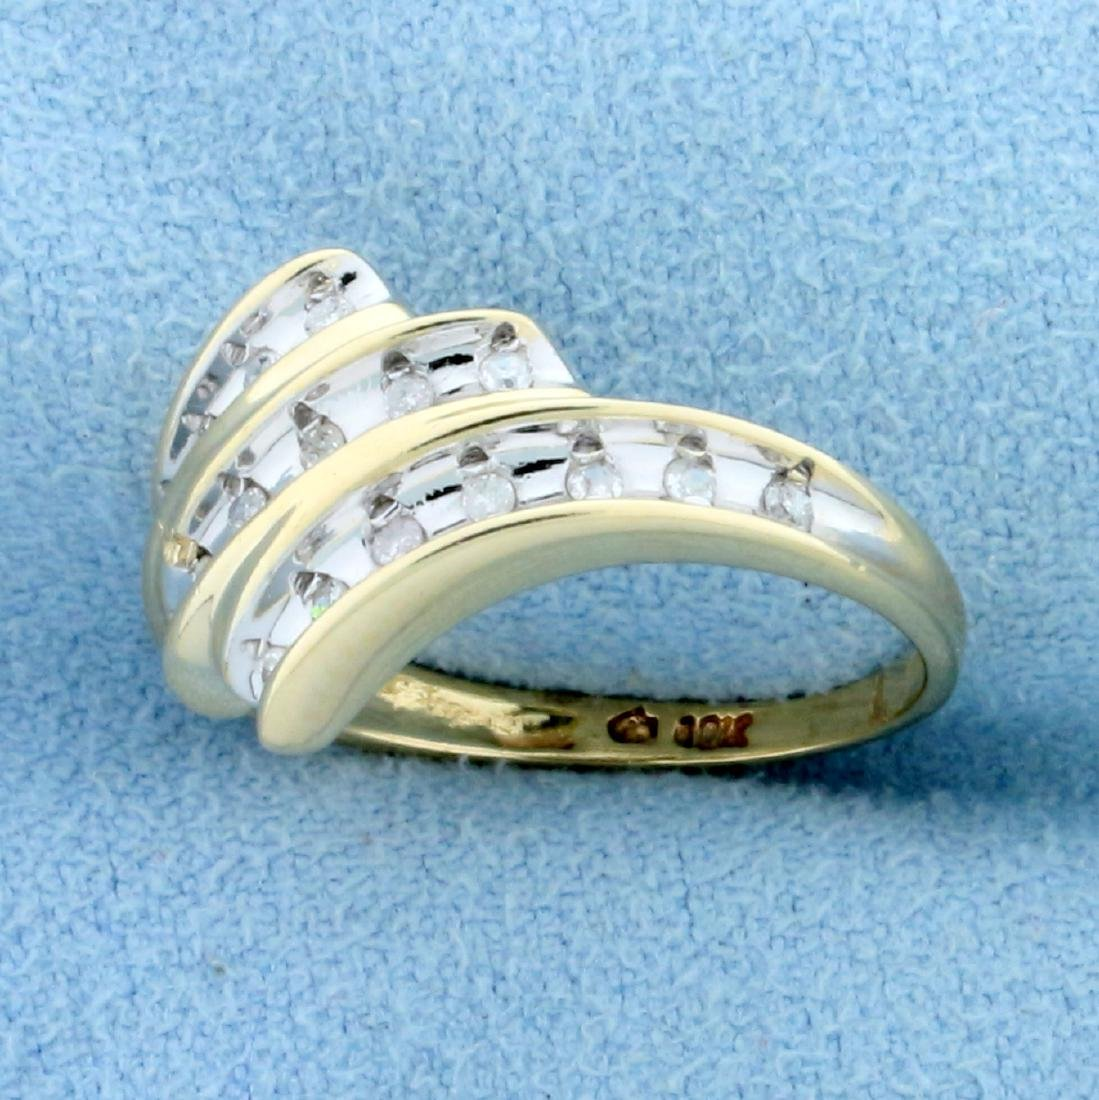 1/4ct TW Diamond Ring in 10K Yellow and White Gold - 2